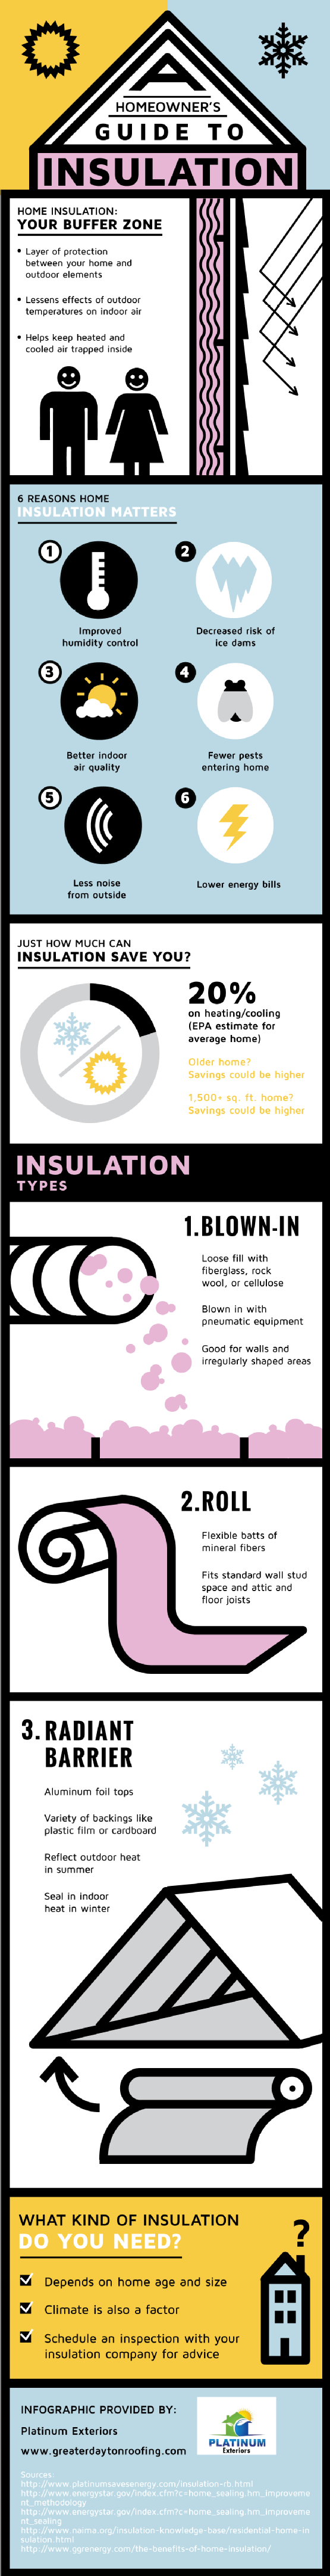 A Homeowner S Guide To Insulation Infographic For The Days When I Start Building That Castle Of Mine With Images Homeowners Guide Home Insulation Insulation